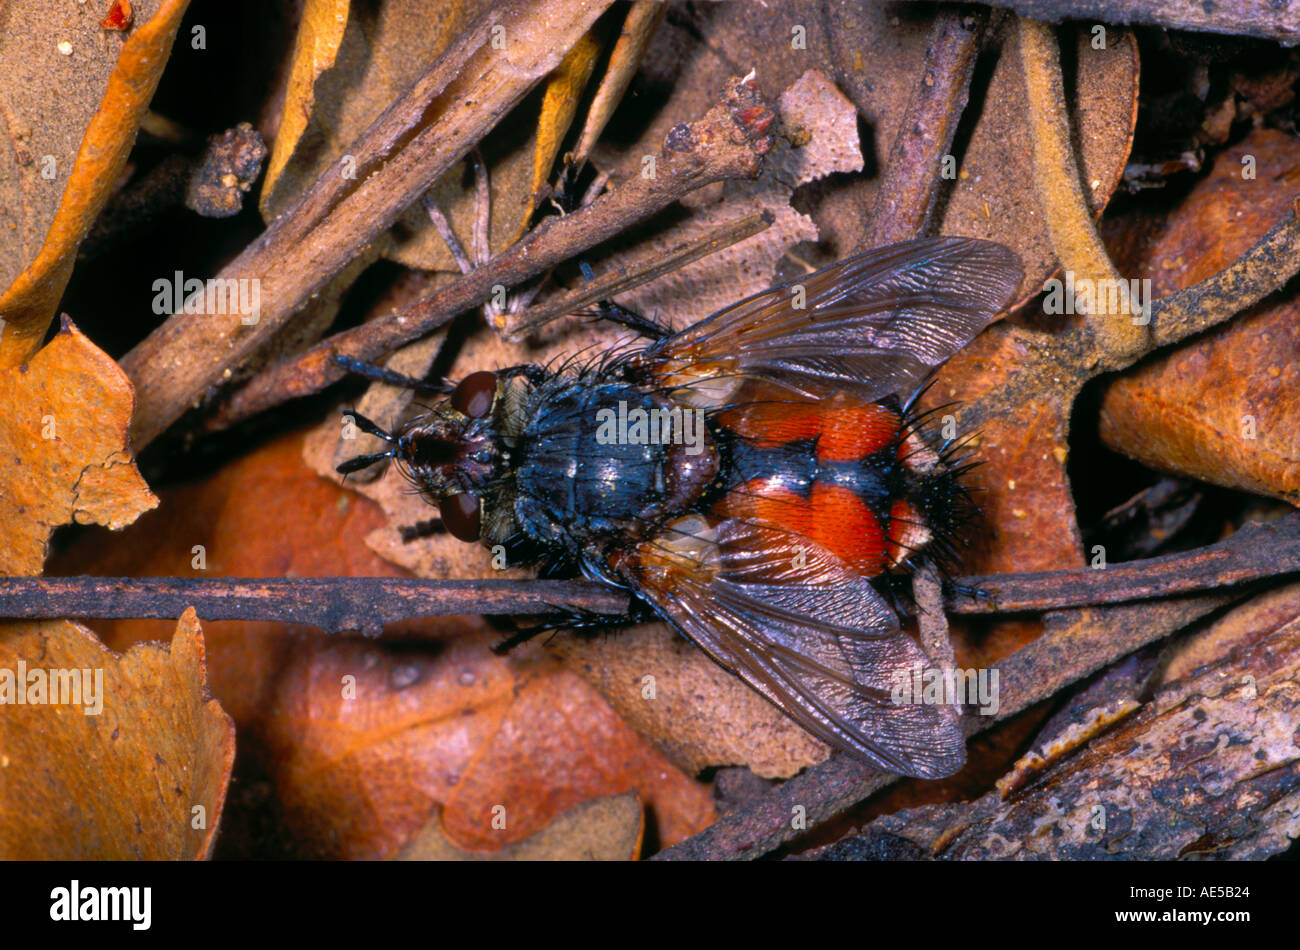 Tachinid Fly, Family Tachinidae. On ground Stock Photo